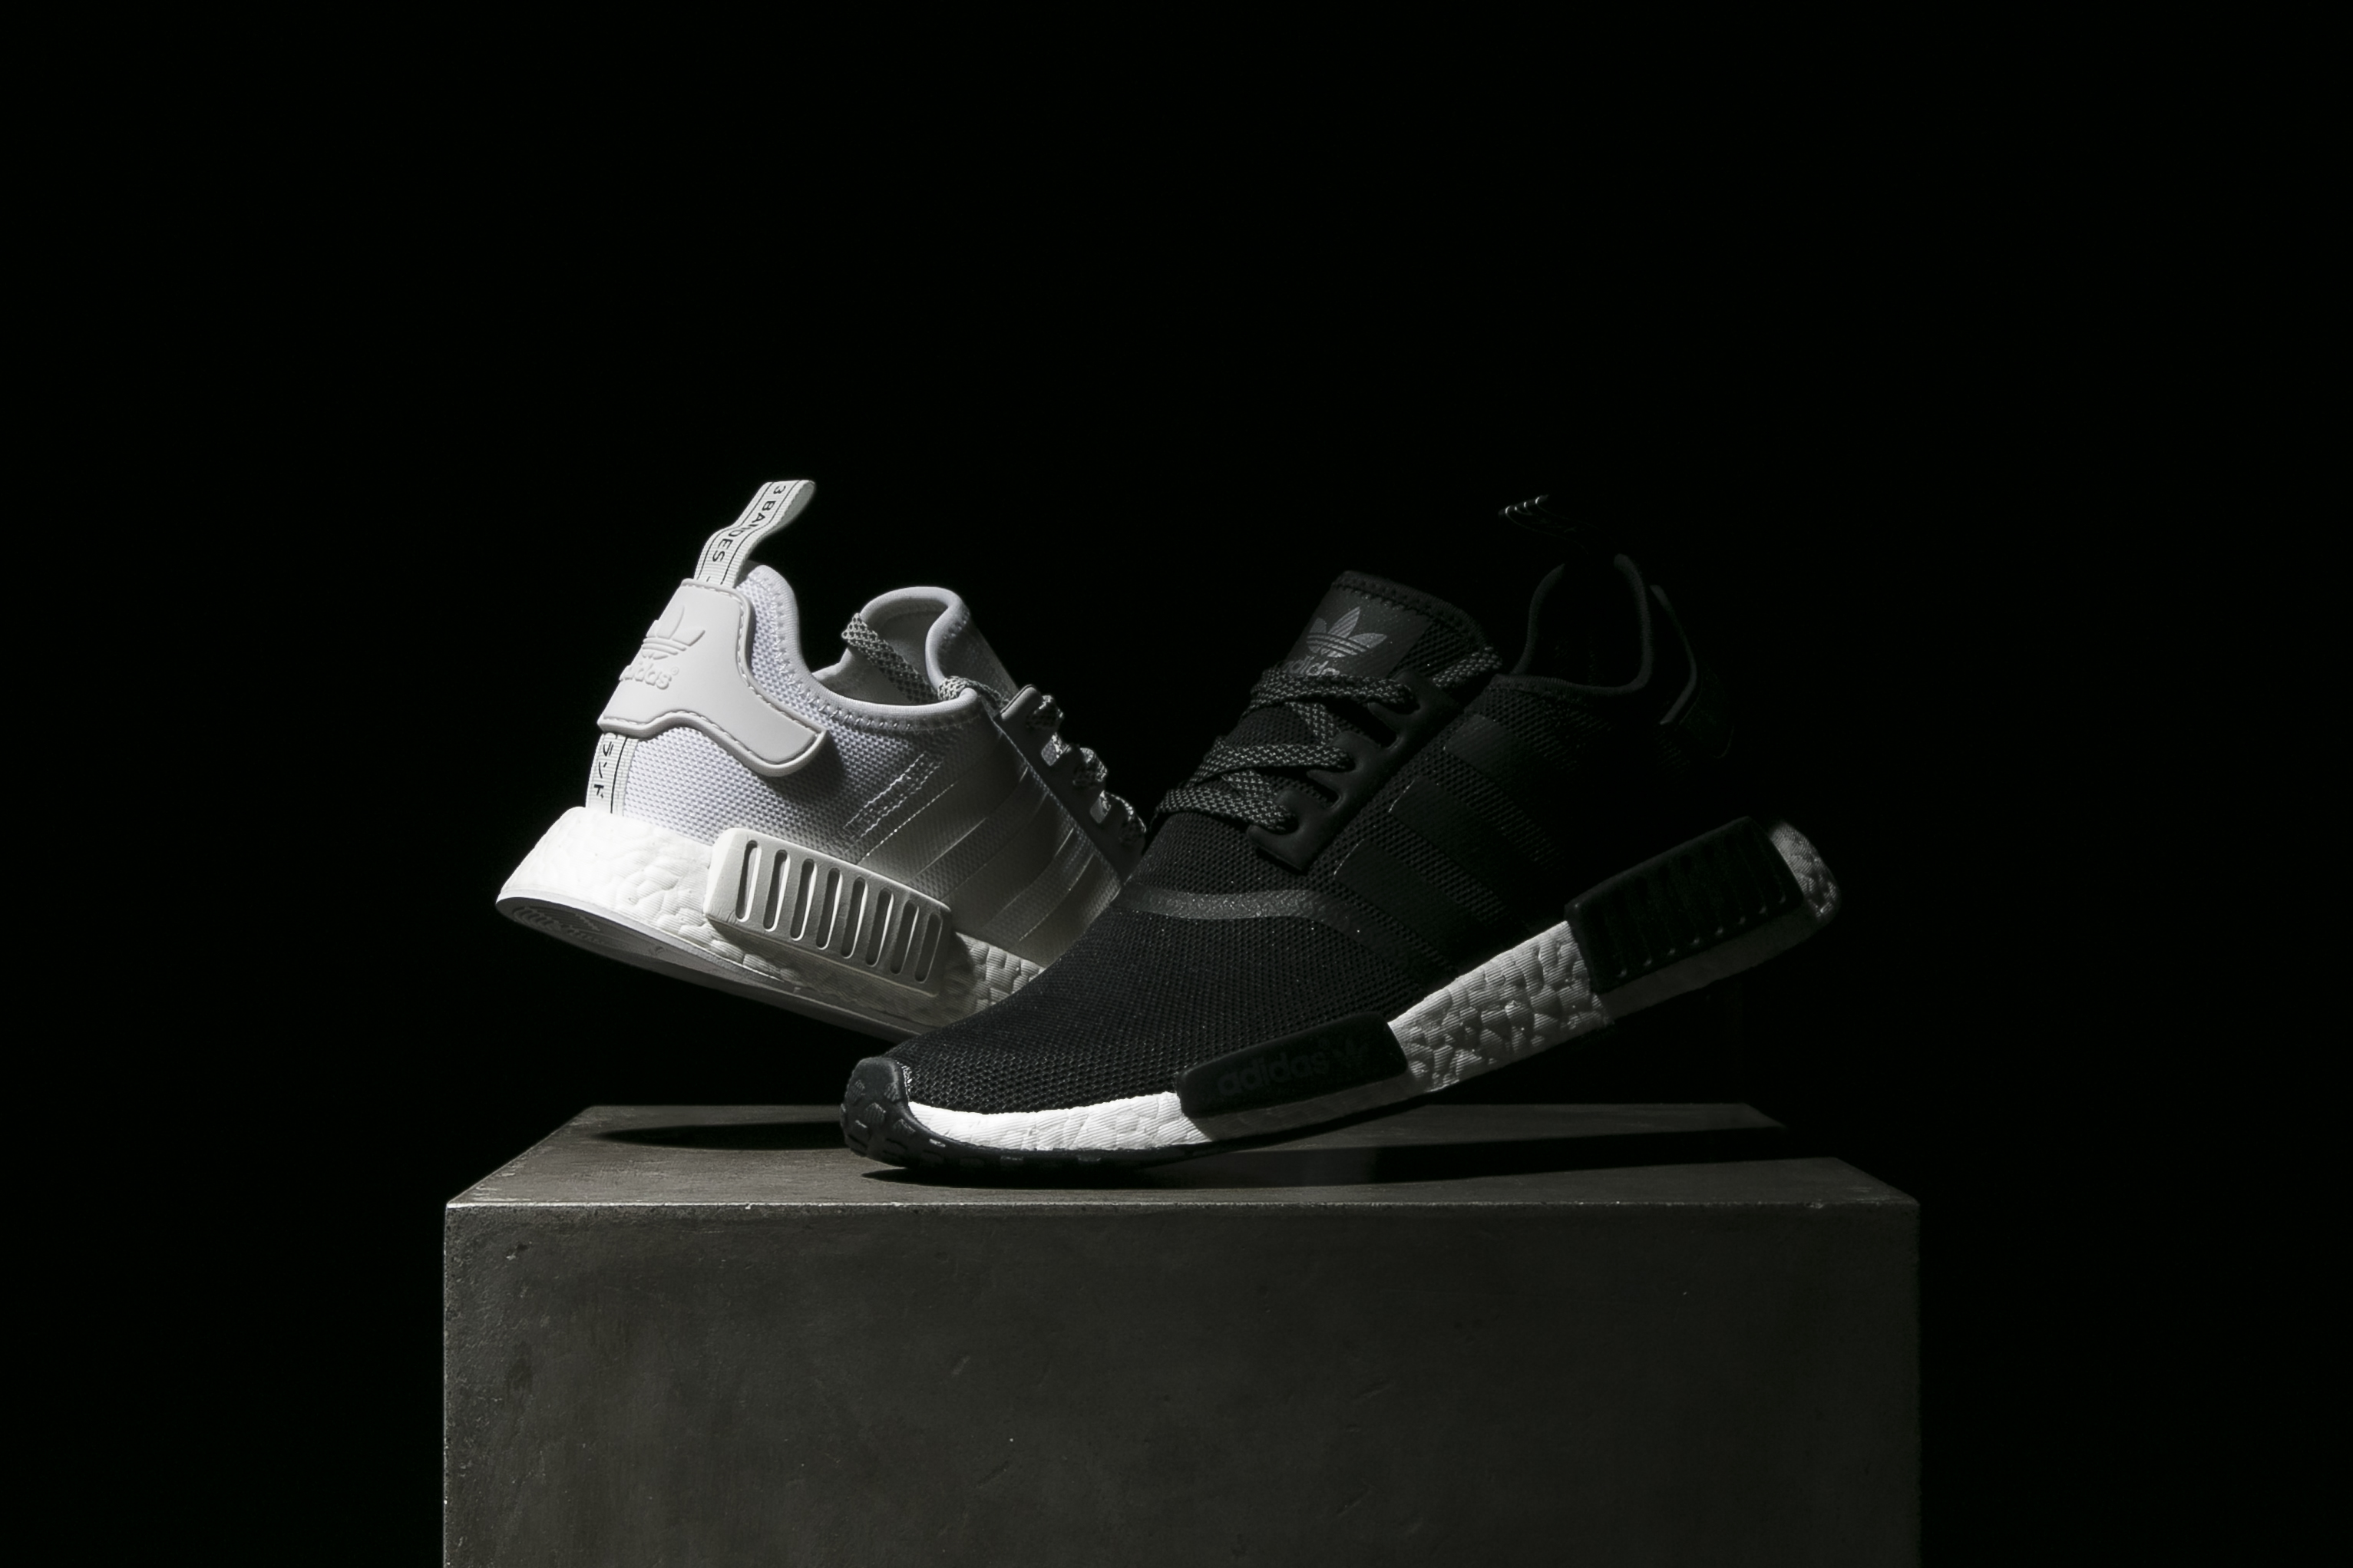 9dcb5ee25a adidas-nmd-r1-reflective-black-white-3 - SneakersBR